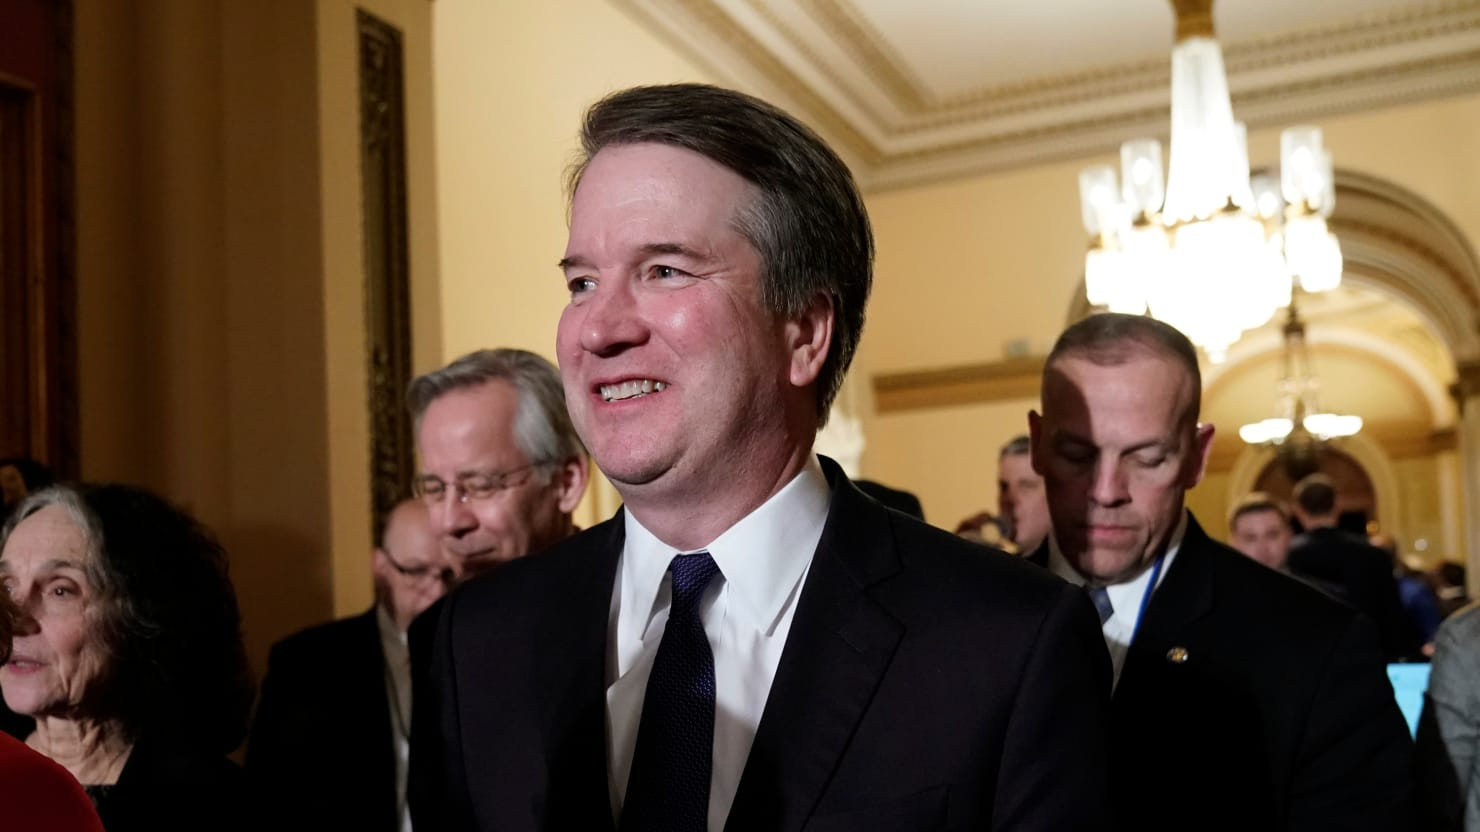 Supreme Court Justice Kavanaugh To Join Faculty at George Mason University's Antonin Scalia Law School